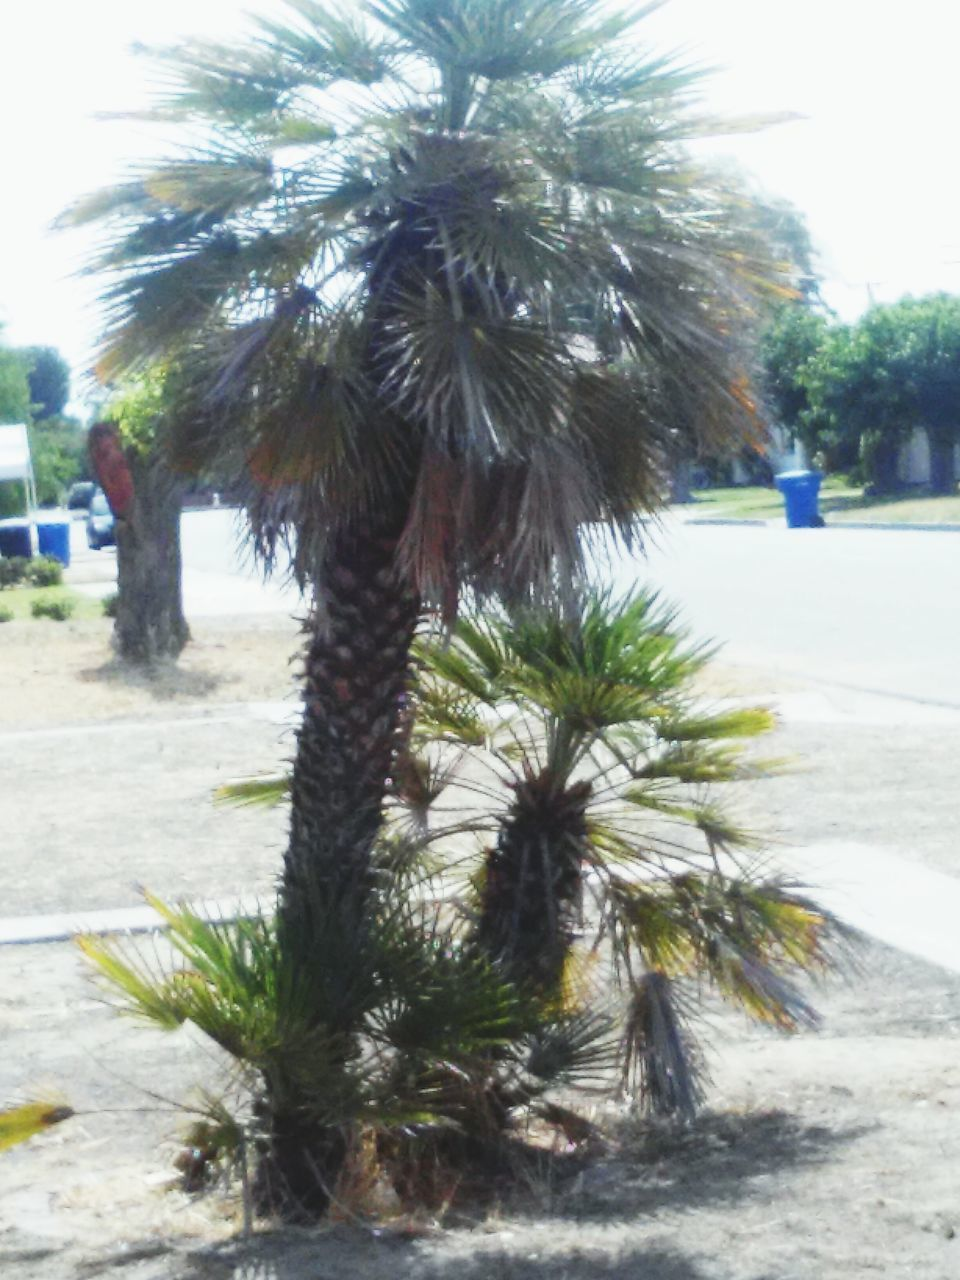 growth, nature, tree, palm tree, outdoors, day, no people, beauty in nature, close-up, sky